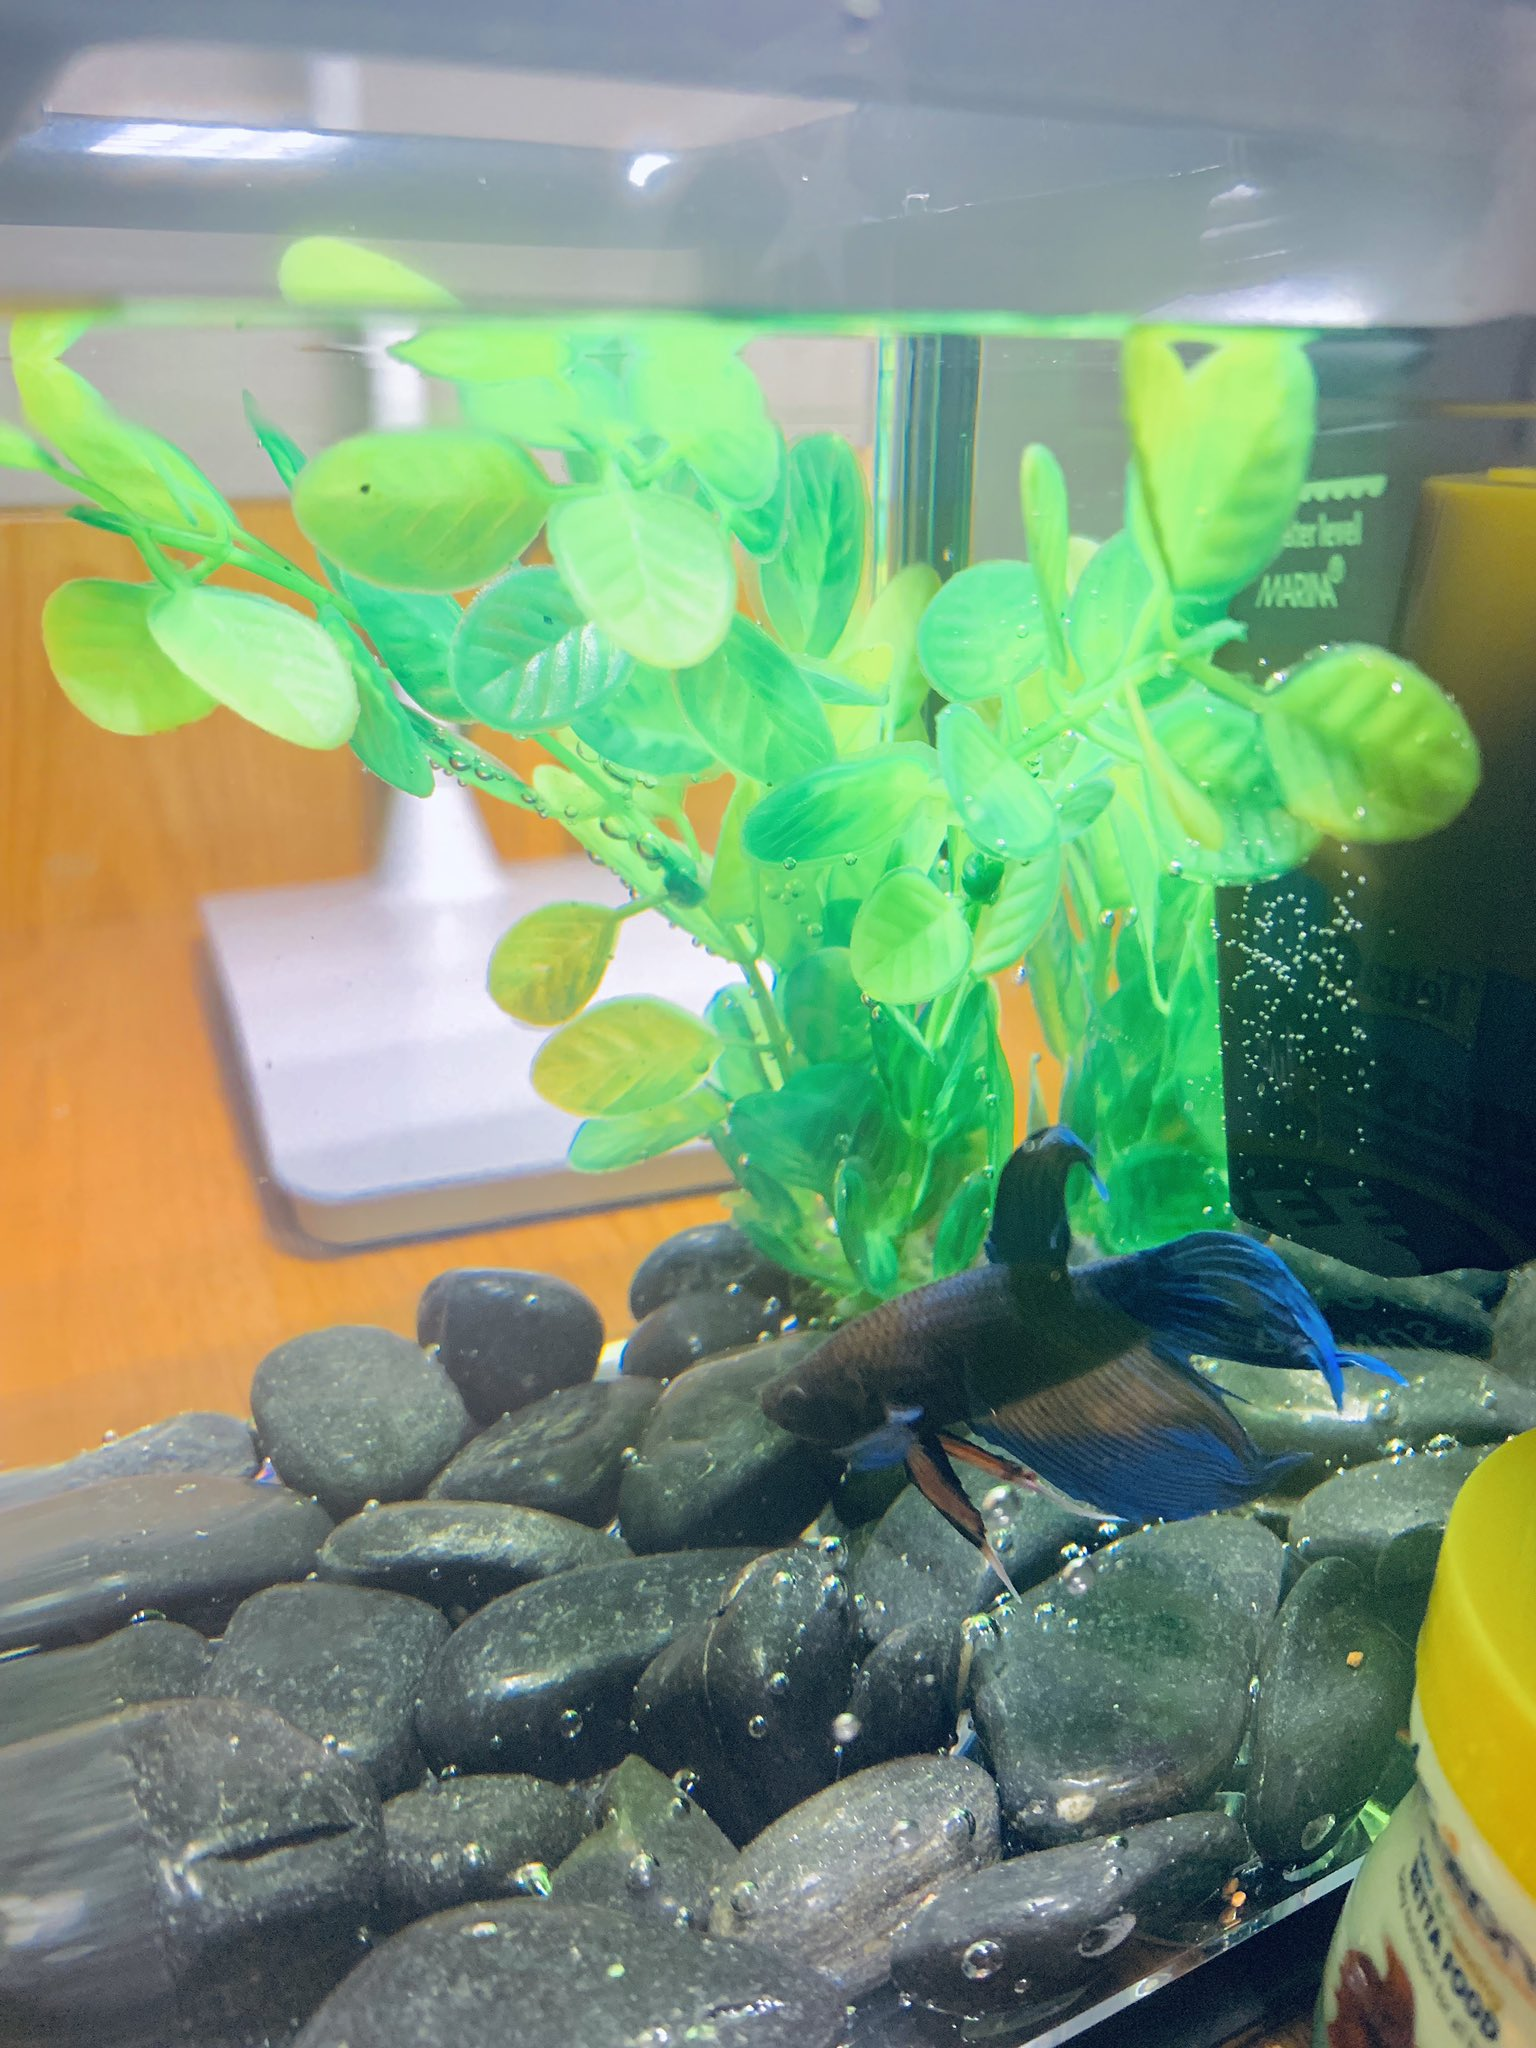 I got a fish today and named it Leslie Knope. happy birthday Amy Poehler